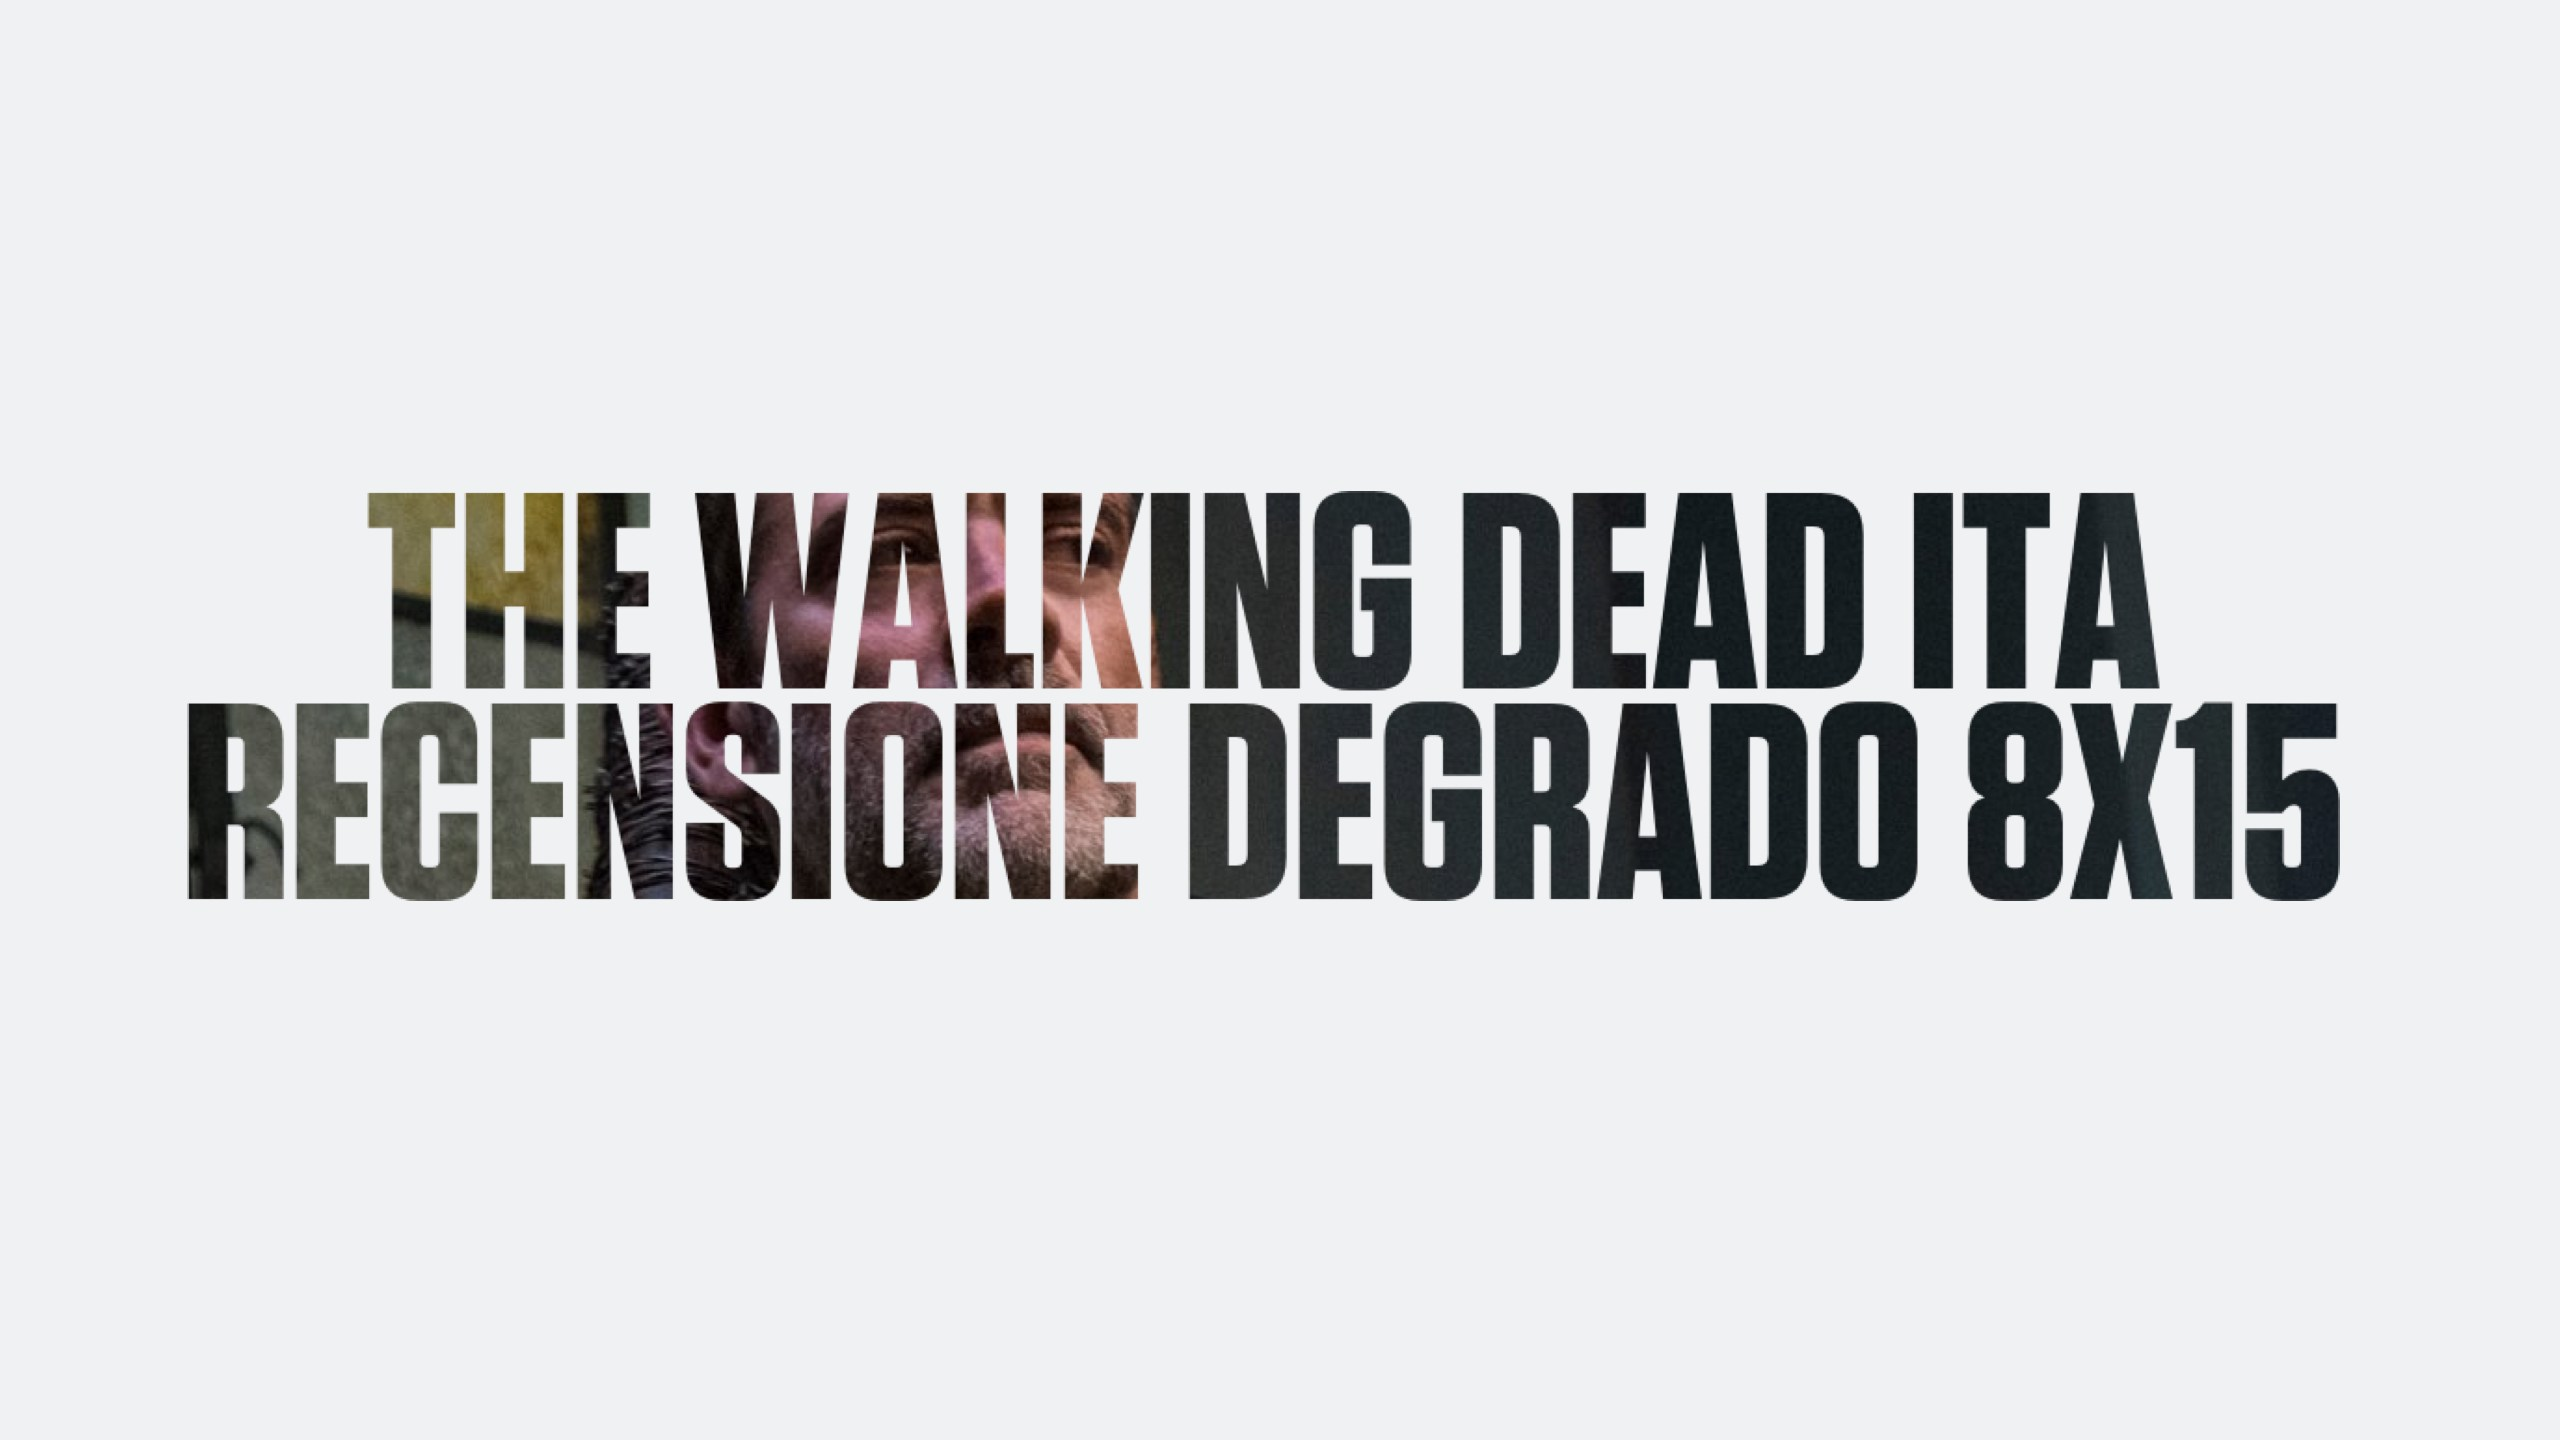 Recensione Degrado The Walking Dead 8×15